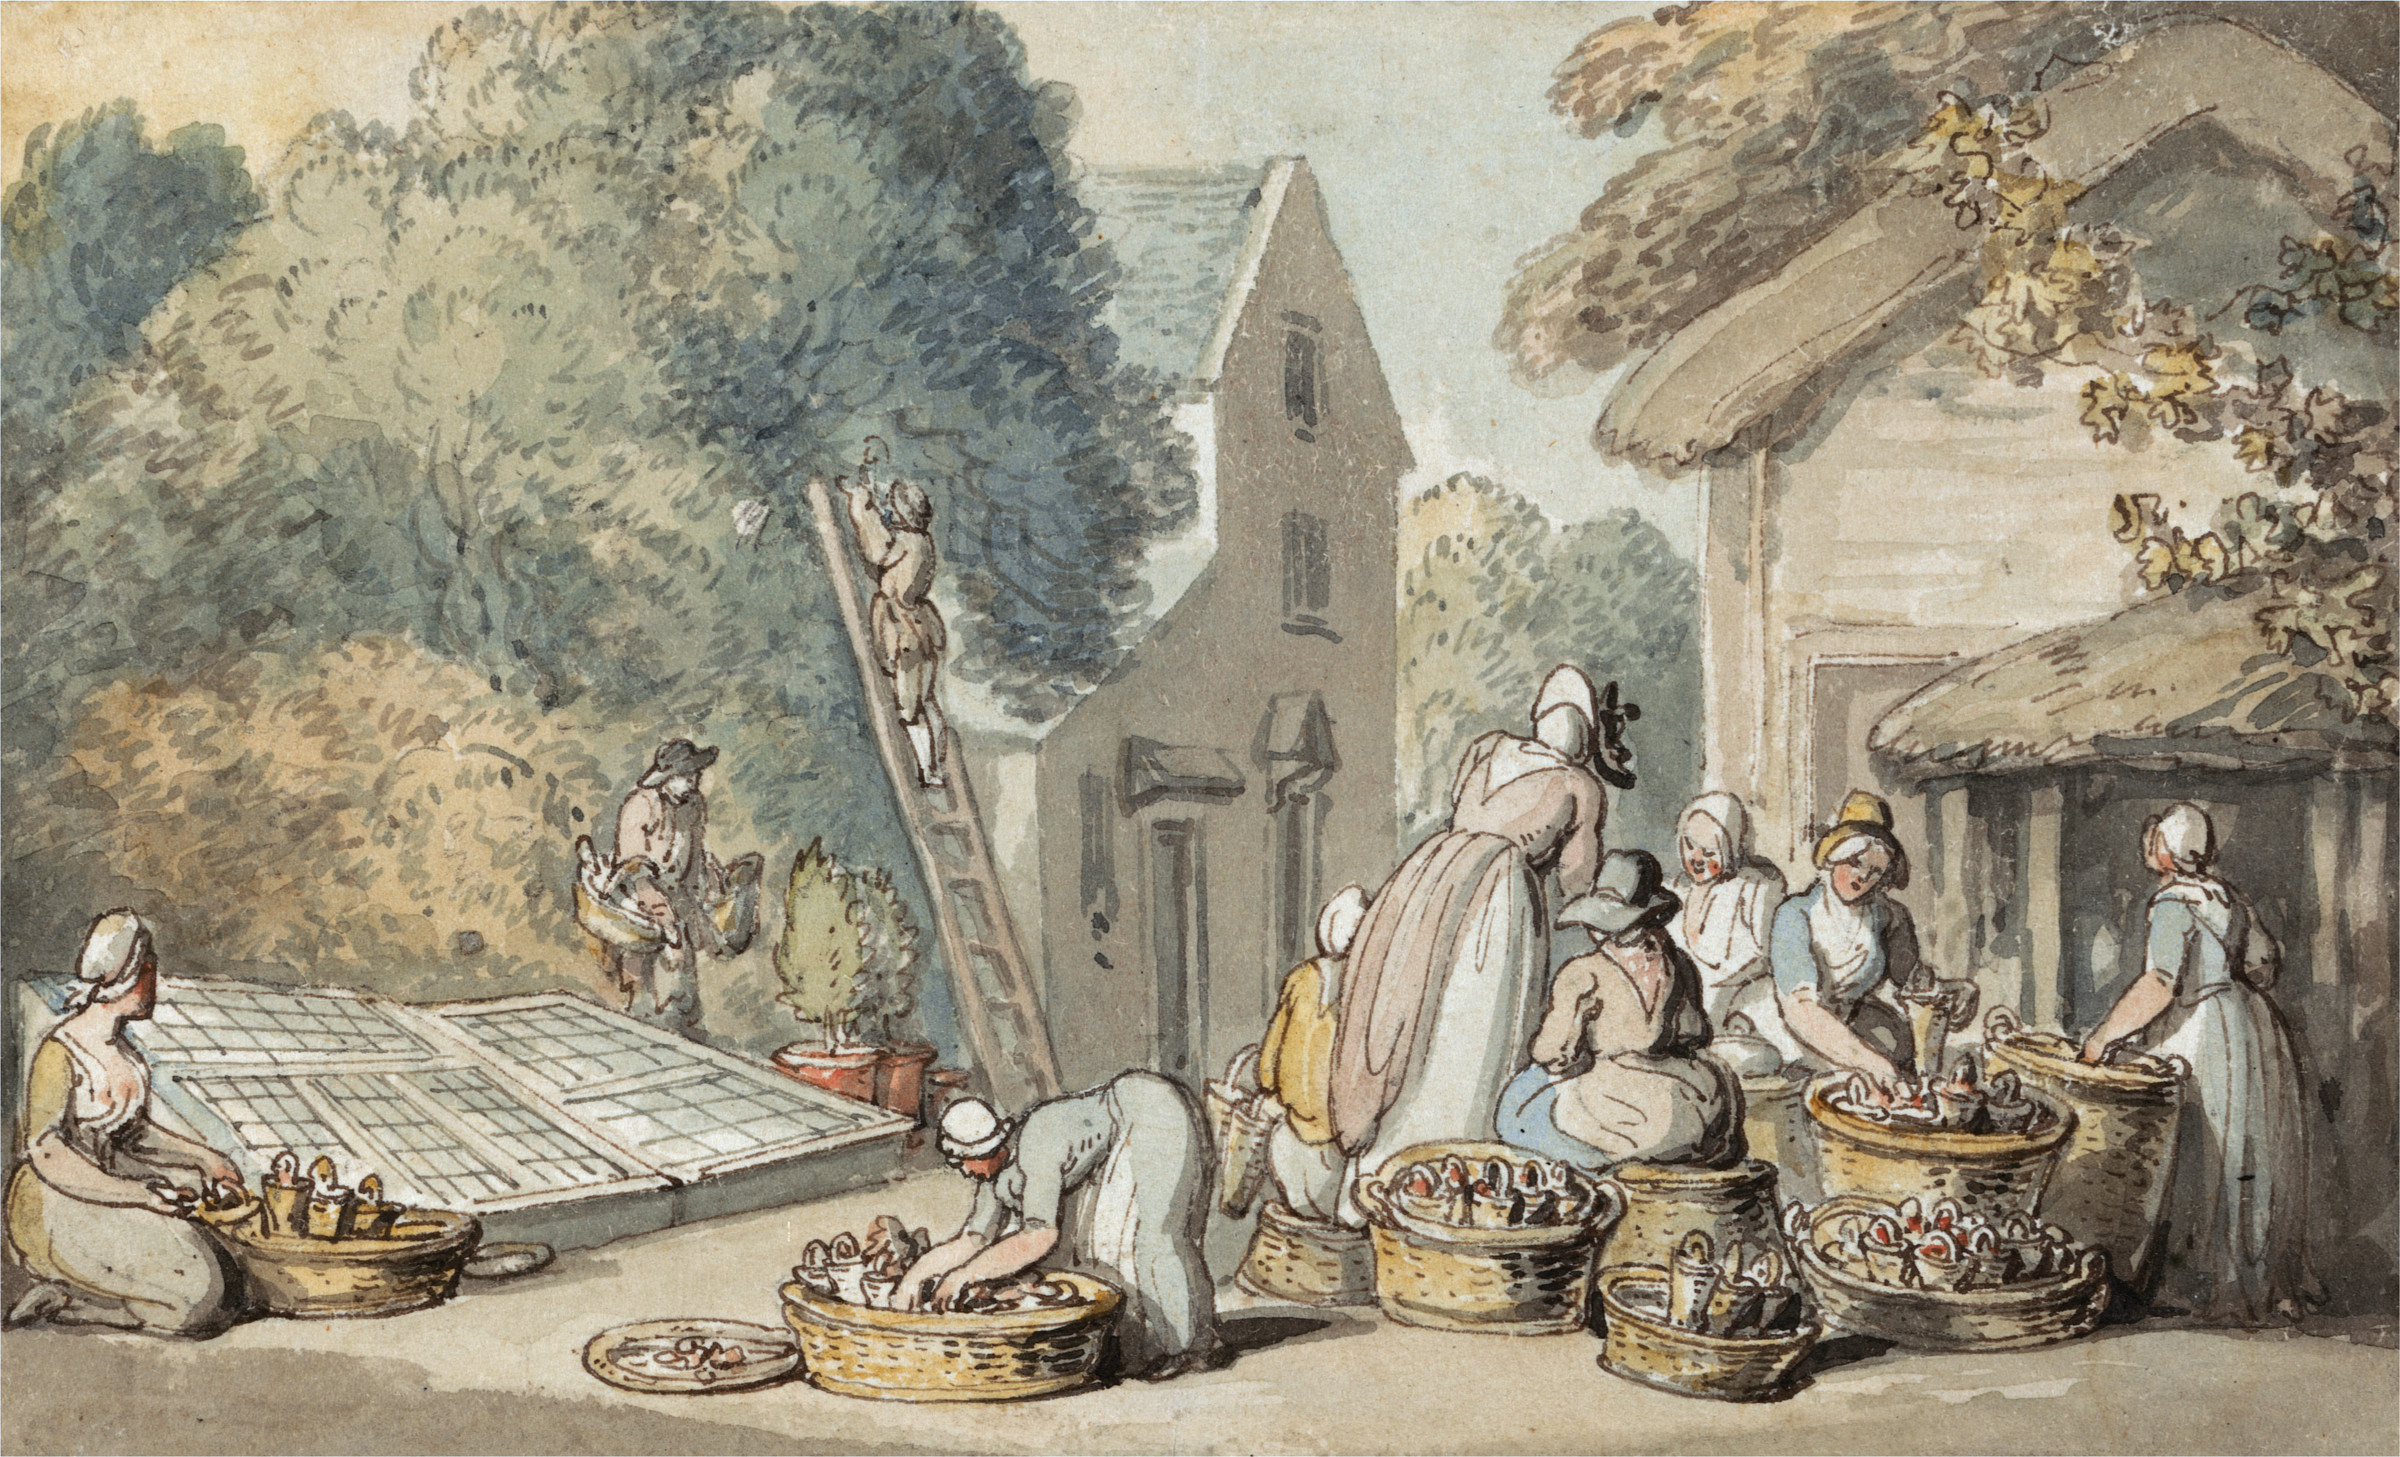 Picking Mulberries by Thomas Rowlandson | Sifting The Past